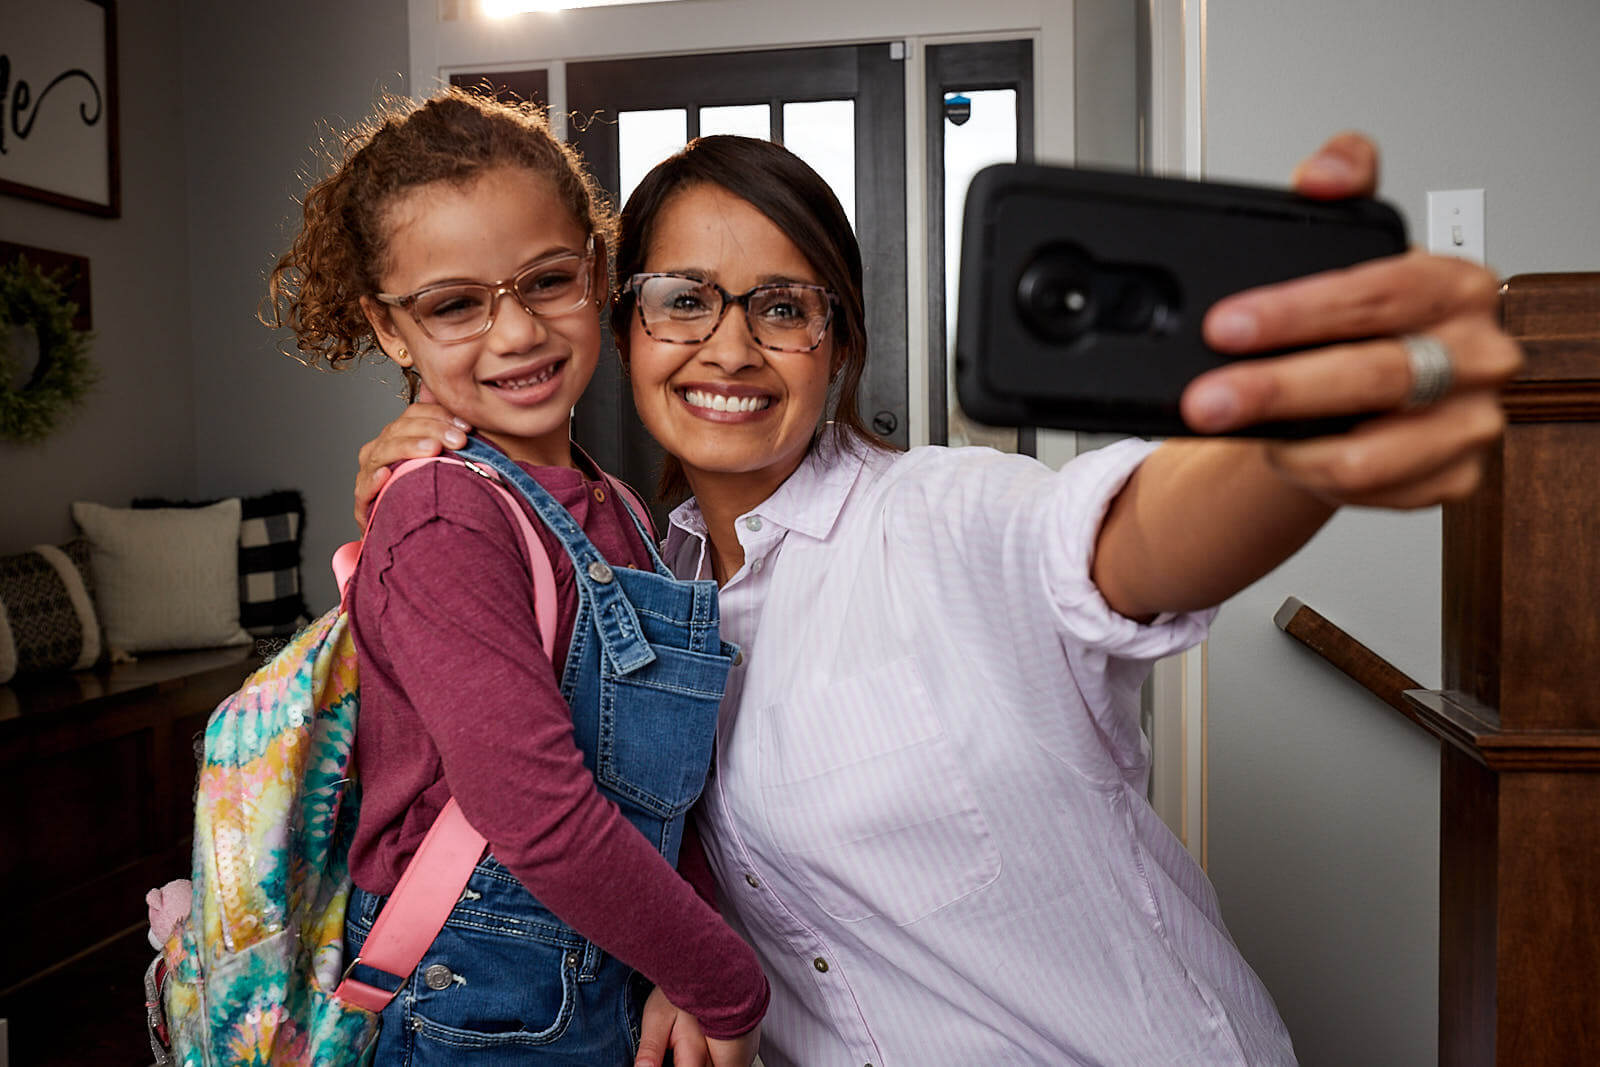 mother and daughter taking back-to-school selfie